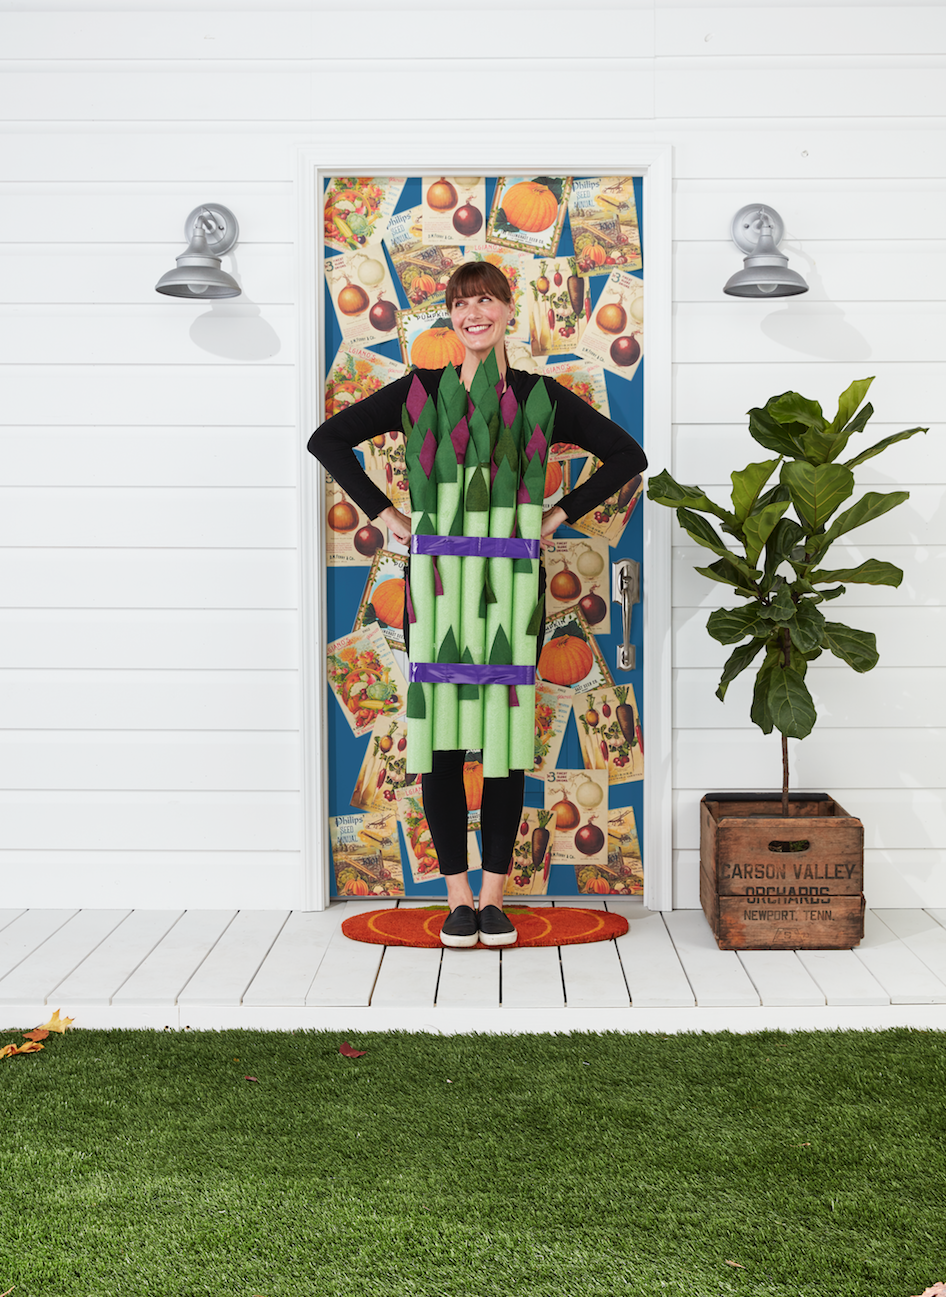 """<p>Show off your green thumb and love for farmer's markets with this cute asparagus costume. It's super easy to put together, promise.</p><p><strong>Make the Costume: </strong>Gather five lime green pool noodles. Cut leaves from purple and green felt (<a href=""""https://www.countryliving.com/diy-crafts/how-to/a3048/halloween-templates-1009/"""" rel=""""nofollow noopener"""" target=""""_blank"""" data-ylk=""""slk:see template"""" class=""""link rapid-noclick-resp"""">see template</a>); you will need 10 to 12 for each stalk. Adhere to noodles, concentrating them at the top, with spray adhesive. Bundle pool noodles with purple duct tape. Tape a pair of suspenders to the back of the noodles and drape over shoulders. </p><p><a class=""""link rapid-noclick-resp"""" href=""""https://www.amazon.com/Oodles-Noodles-Deluxe-Foam-Pool/dp/B0787CFRDM/?tag=syn-yahoo-20&ascsubtag=%5Bartid%7C10050.g.28181767%5Bsrc%7Cyahoo-us"""" rel=""""nofollow noopener"""" target=""""_blank"""" data-ylk=""""slk:SHOP POOL NOODLES"""">SHOP POOL NOODLES</a></p>"""